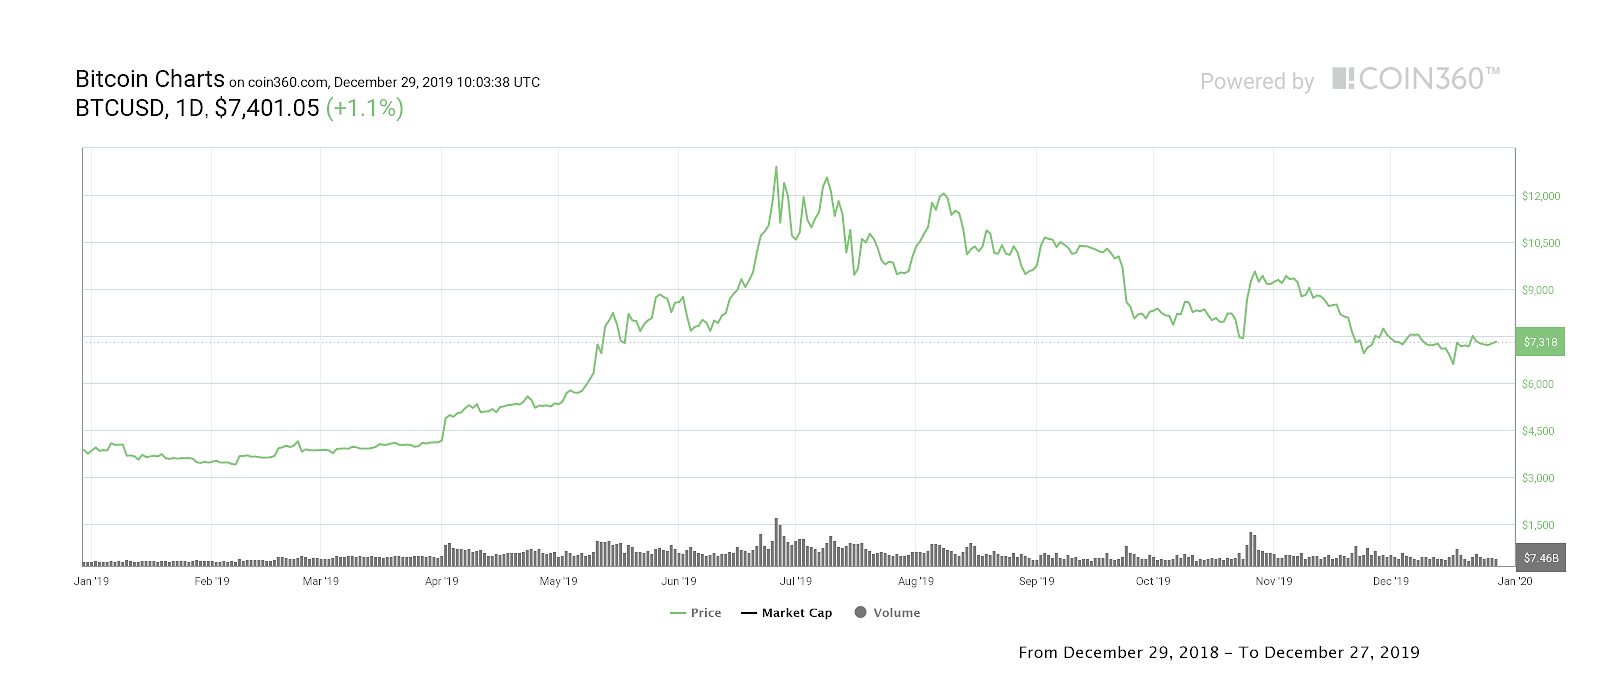 Bitcoin year-to-date price chart